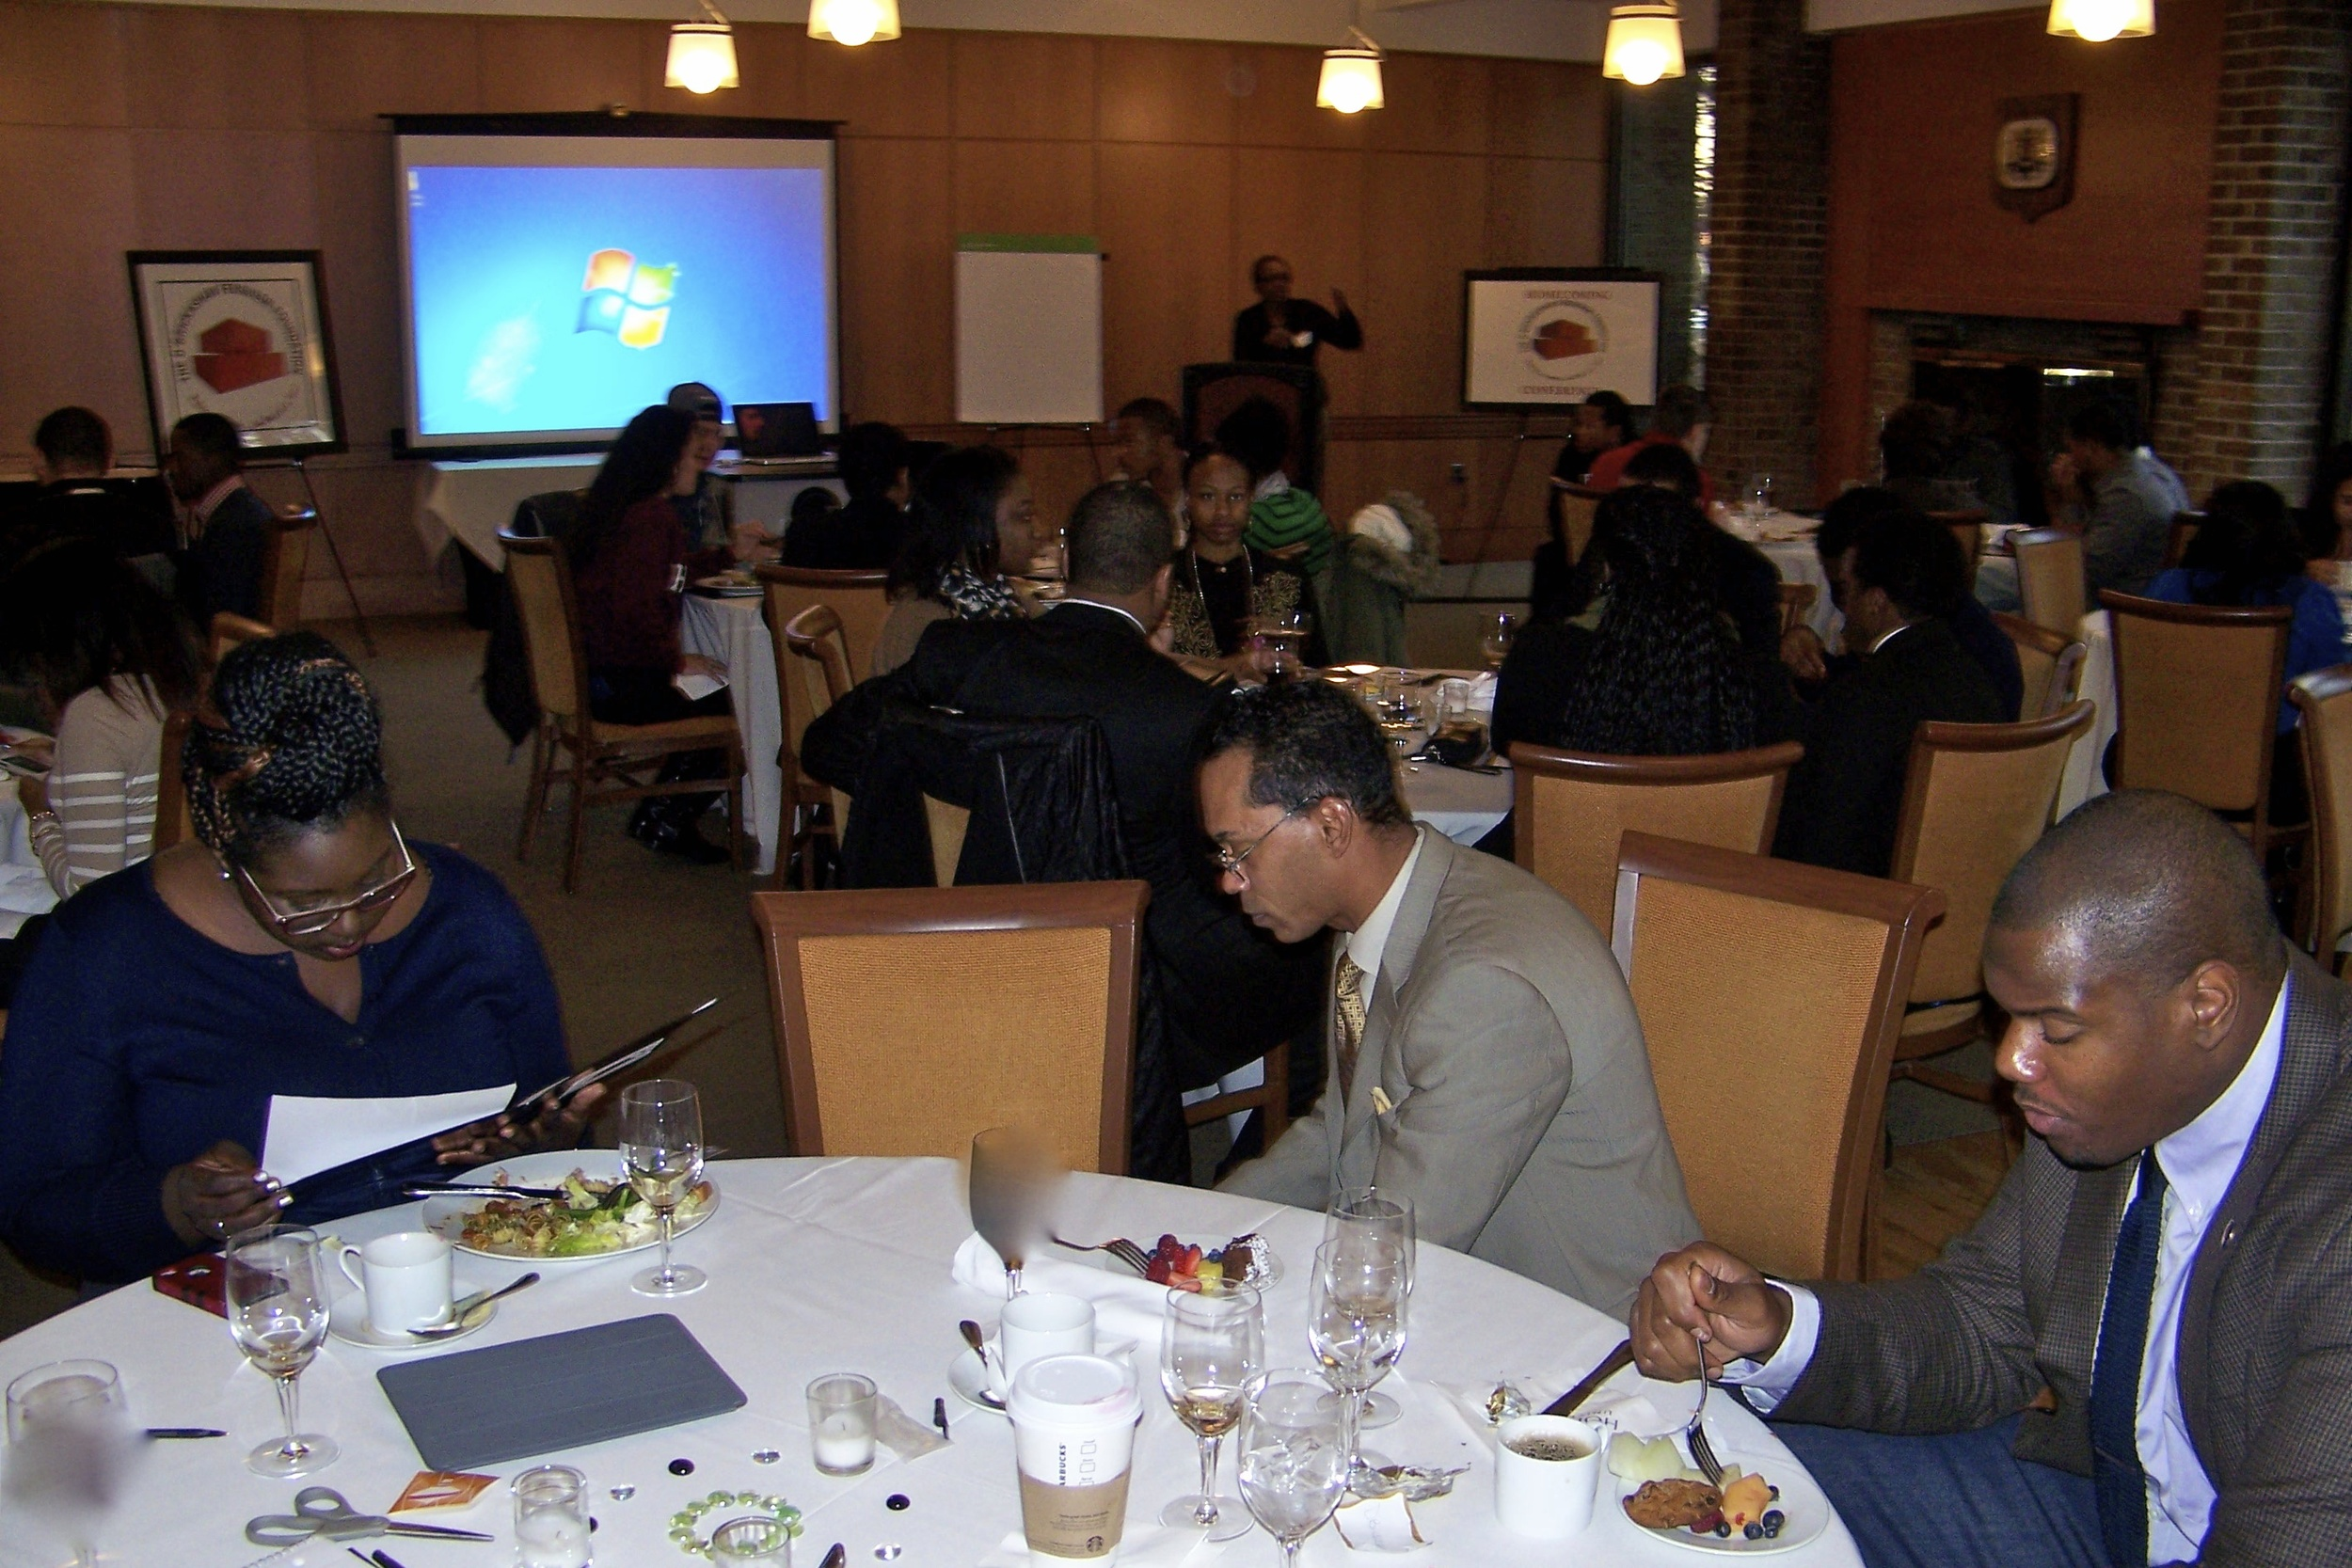 YOUTH-CONFERENCE-1-7-2014 075.JPG